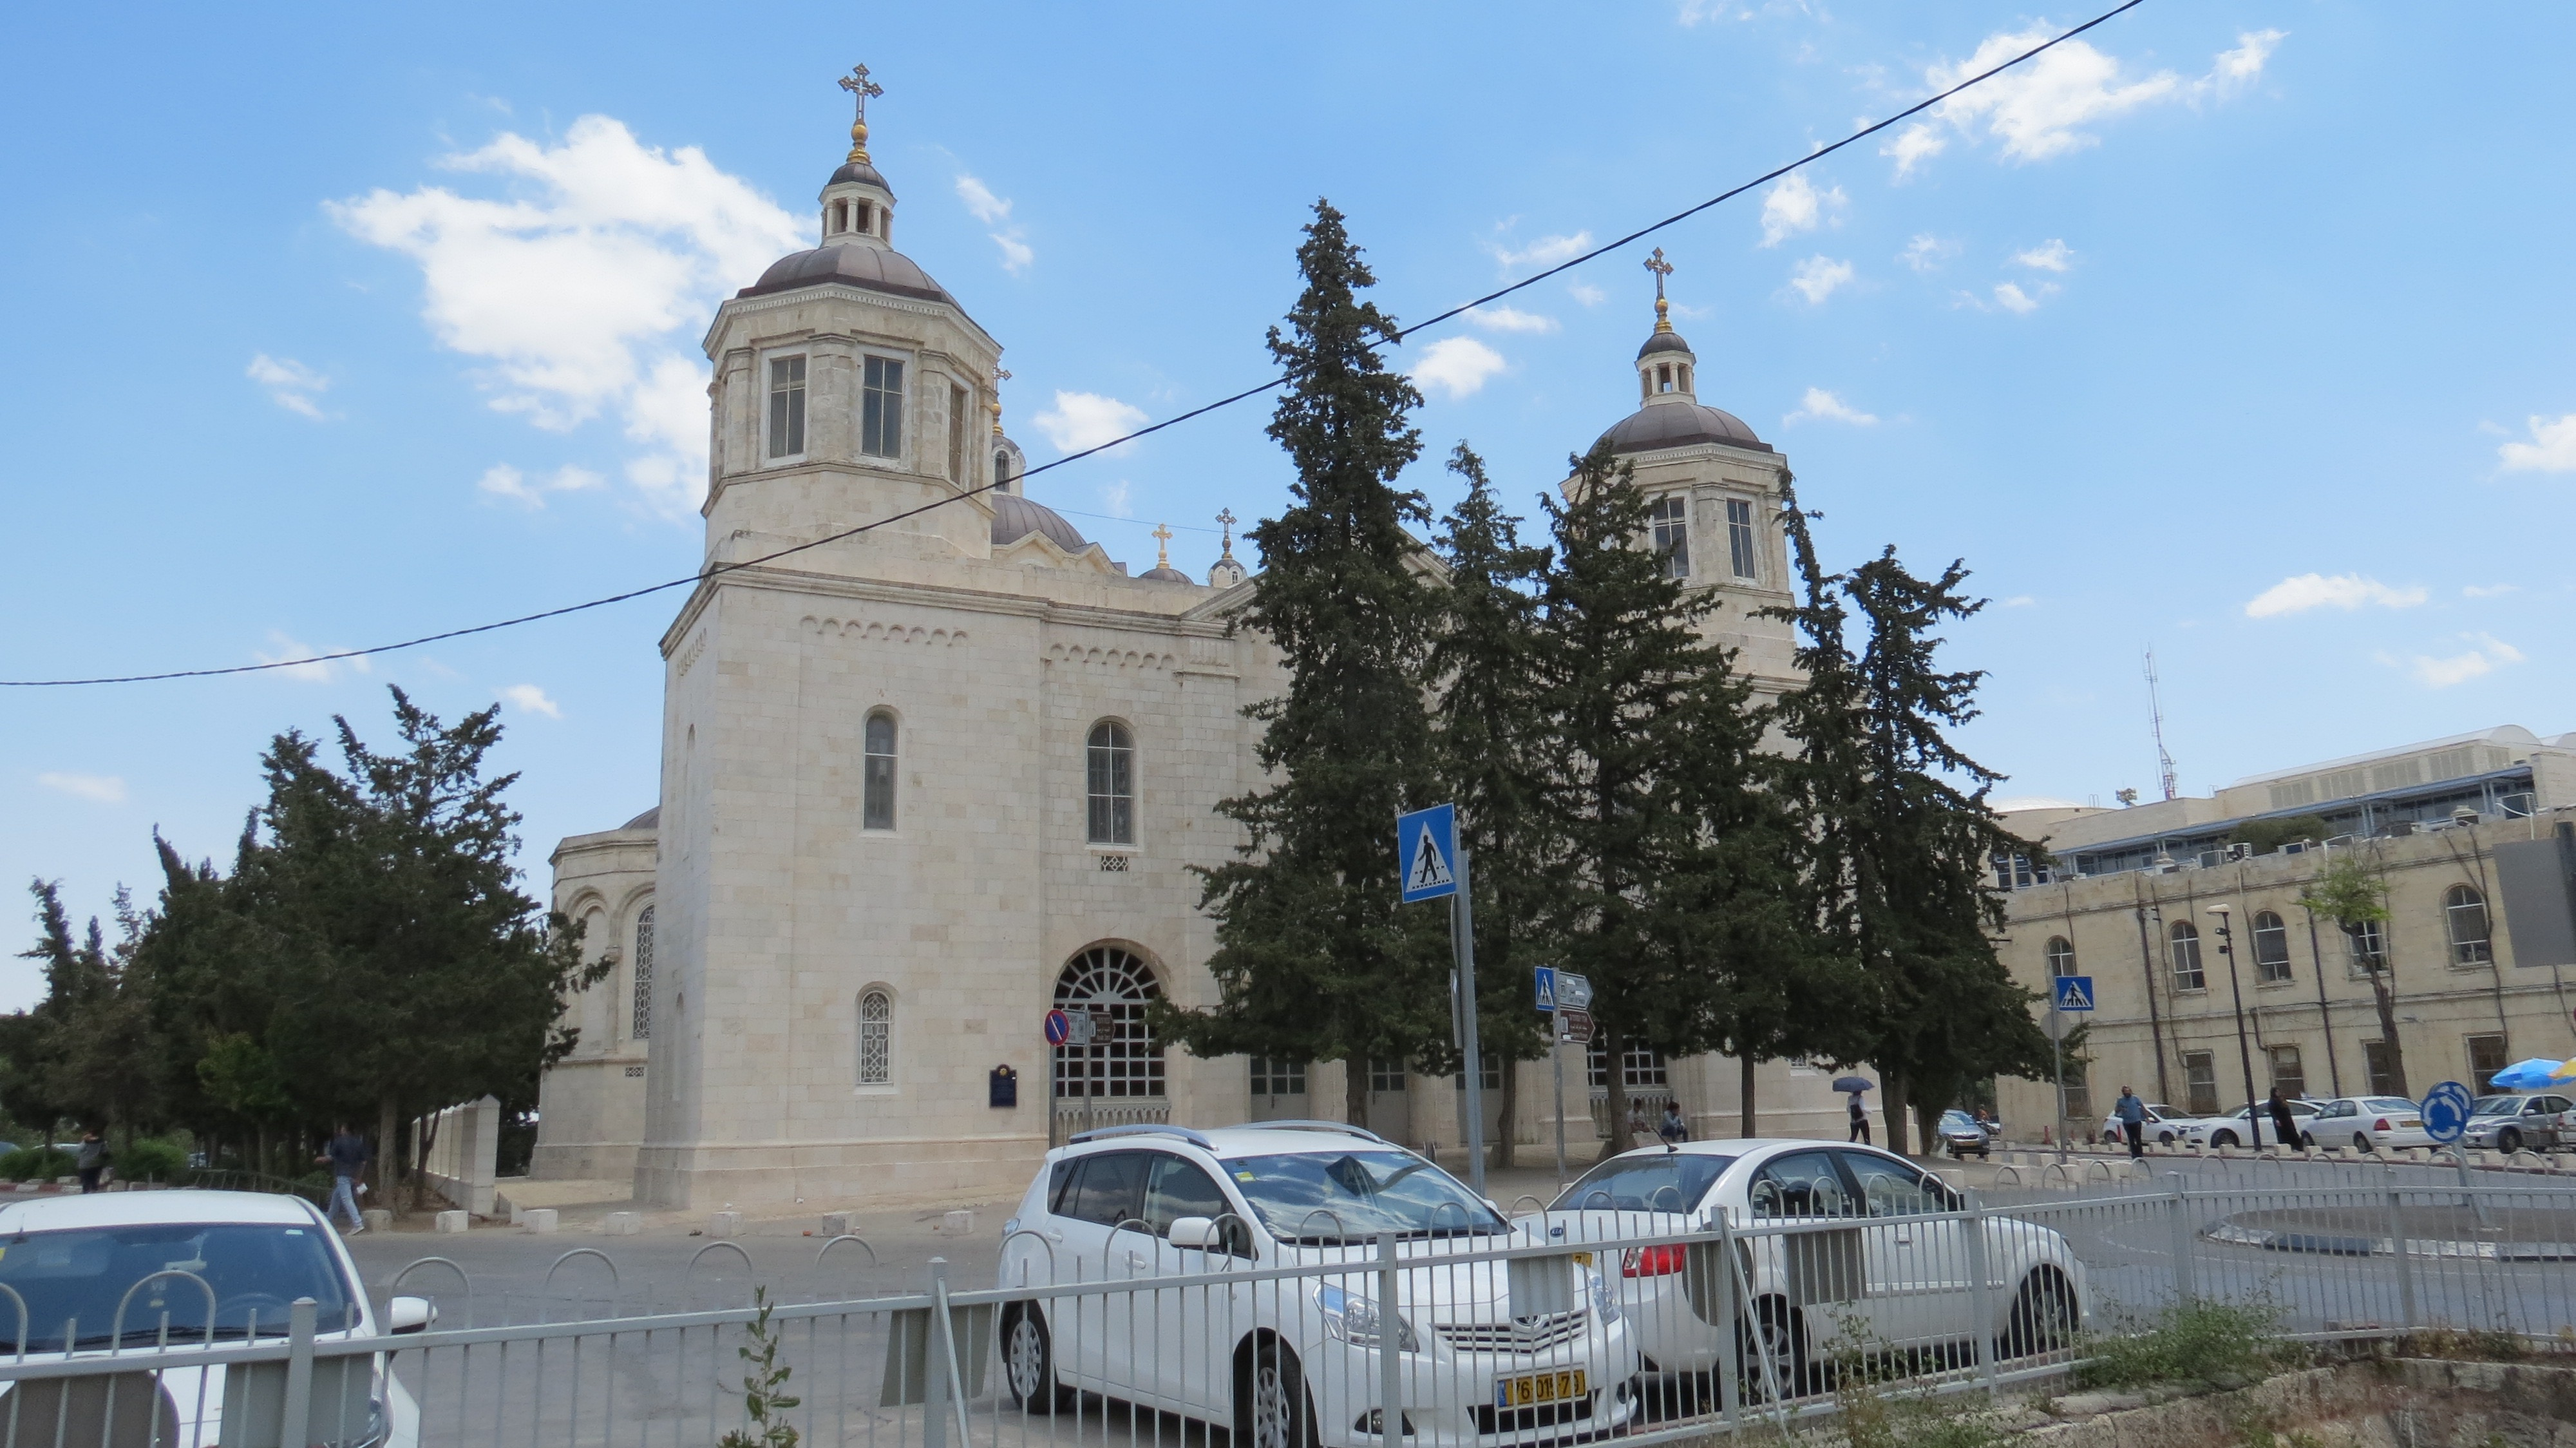 The Russian Compound- The Holy Trinity church